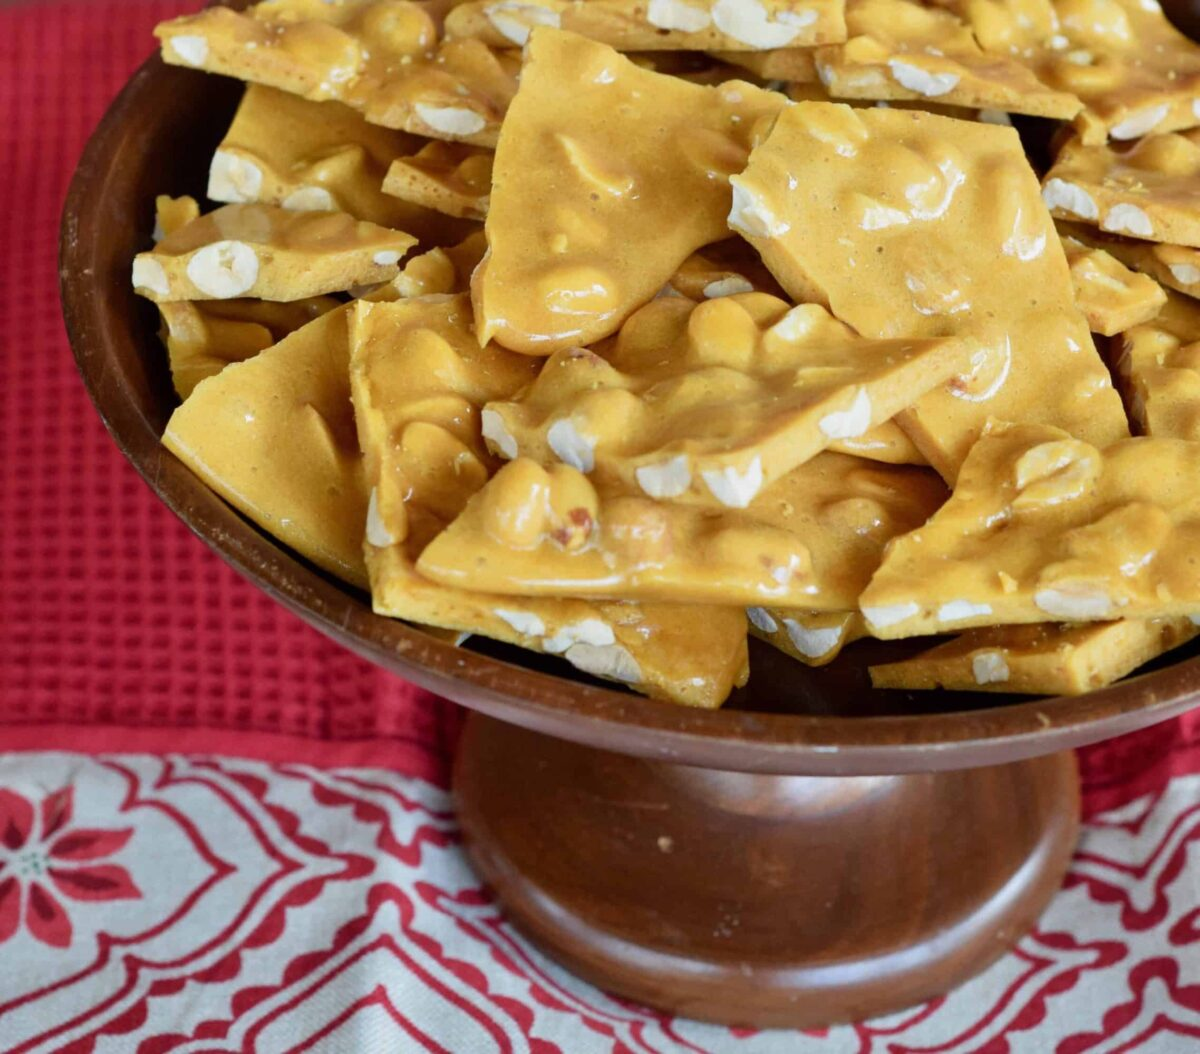 peanut brittle stacked on a wooden cake plate